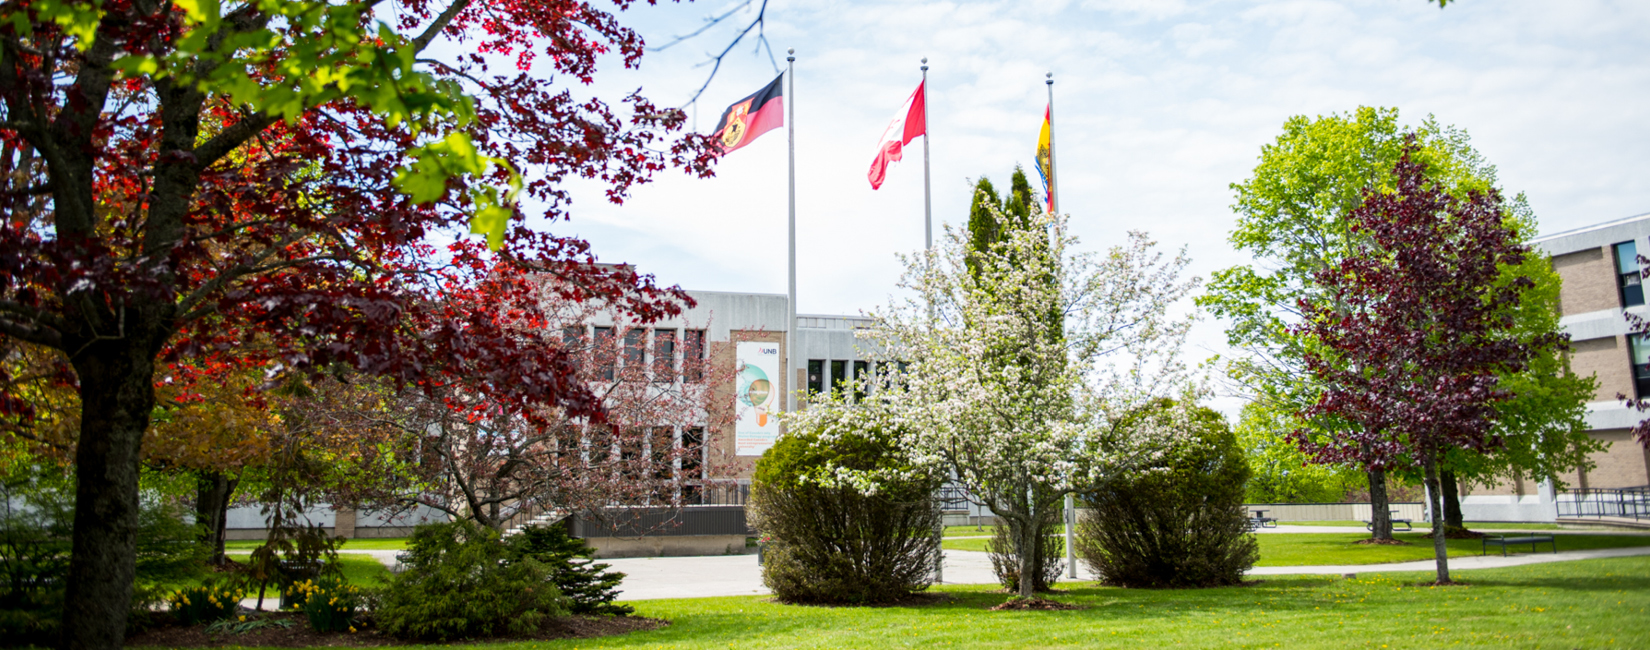 Flags and spring day at University of New Brunswick